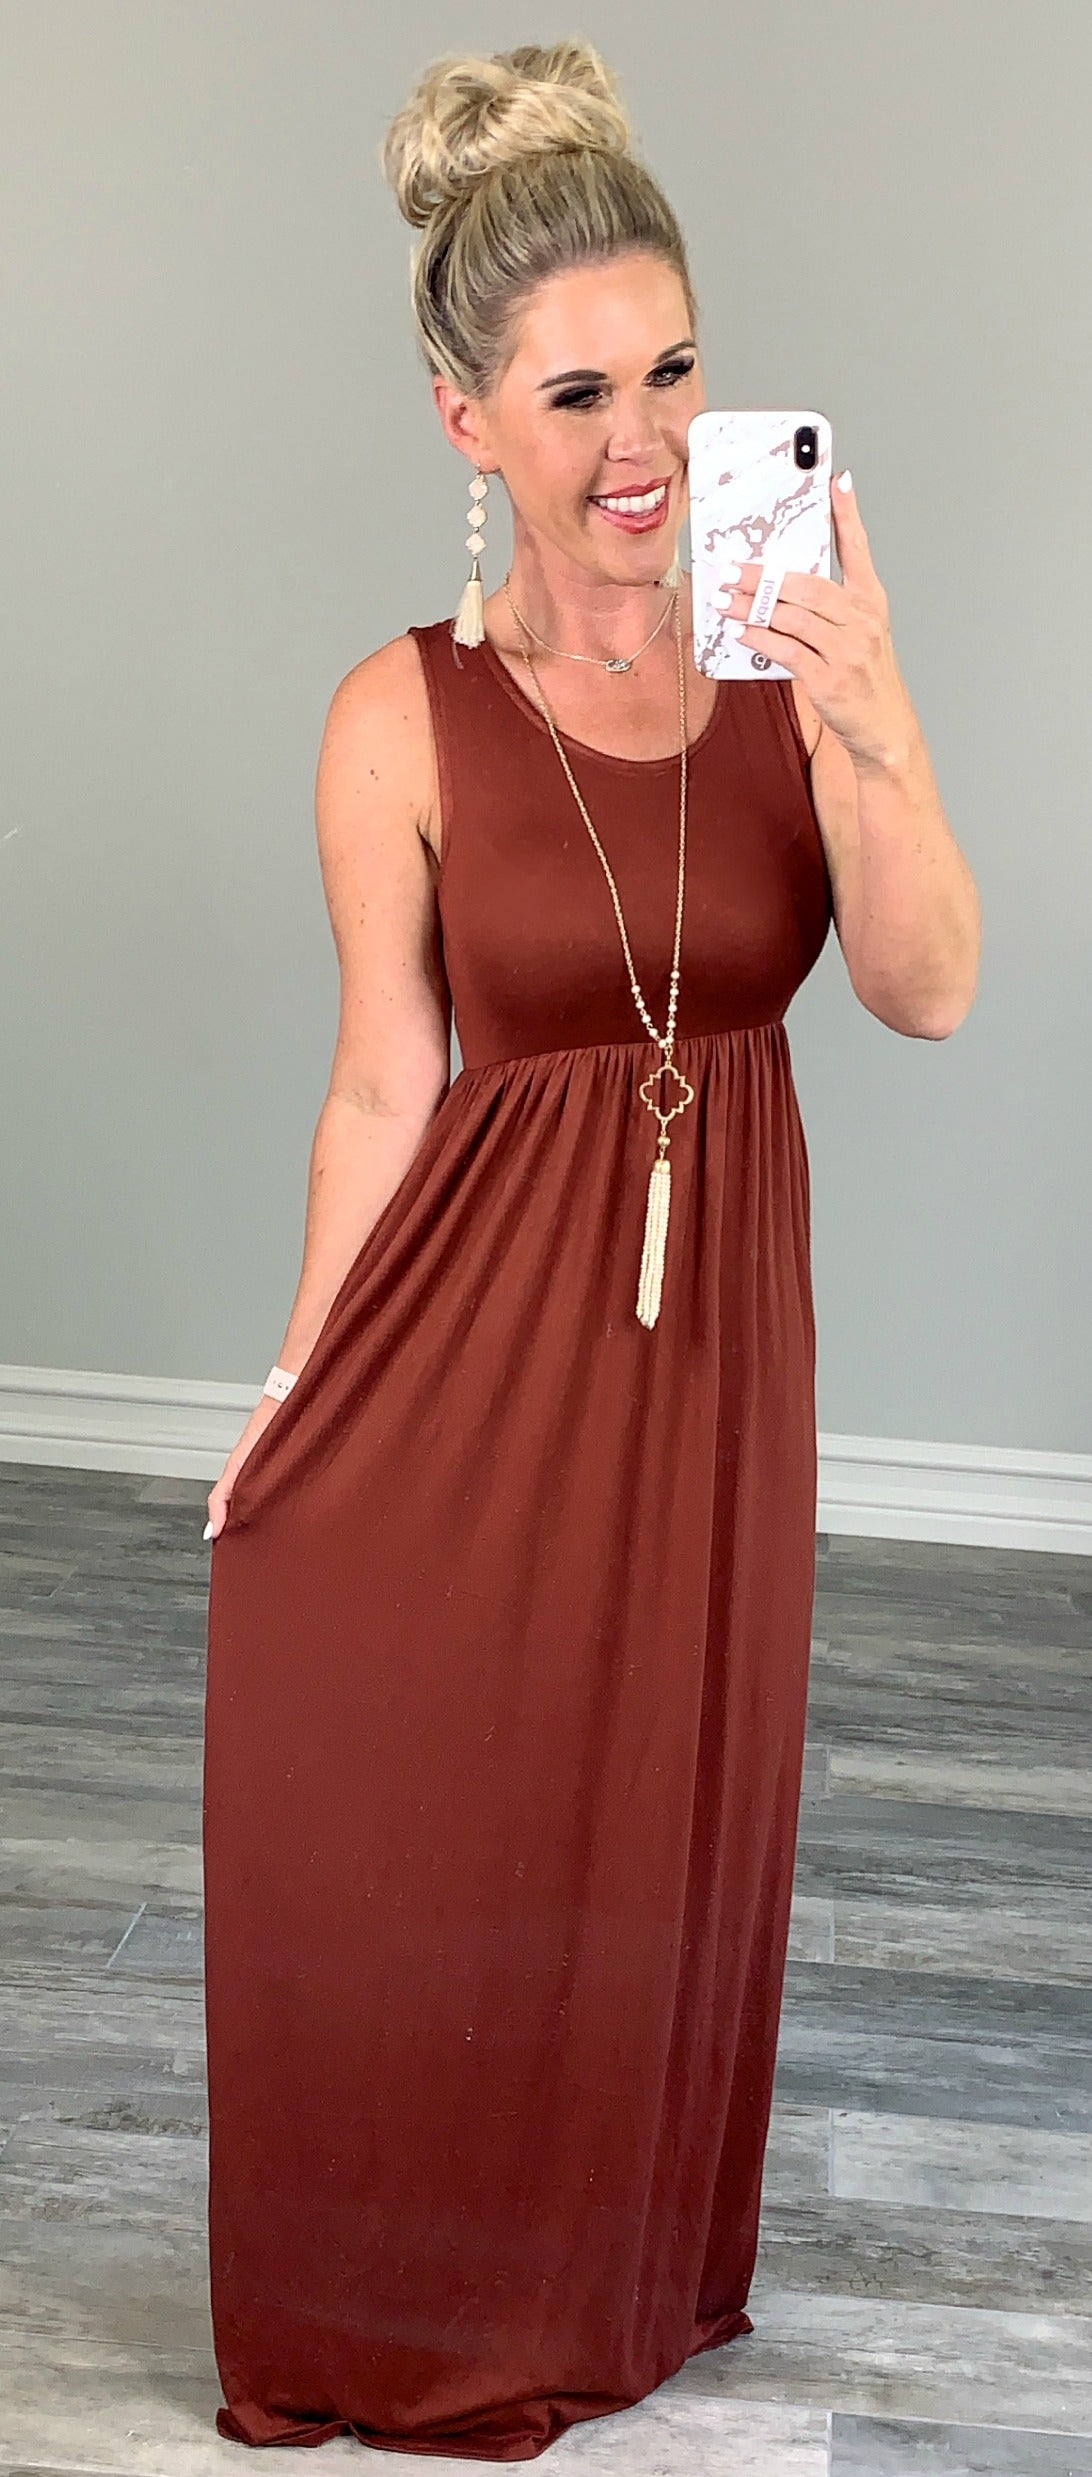 I'll Be By the Pool Maxi Dress - Rust